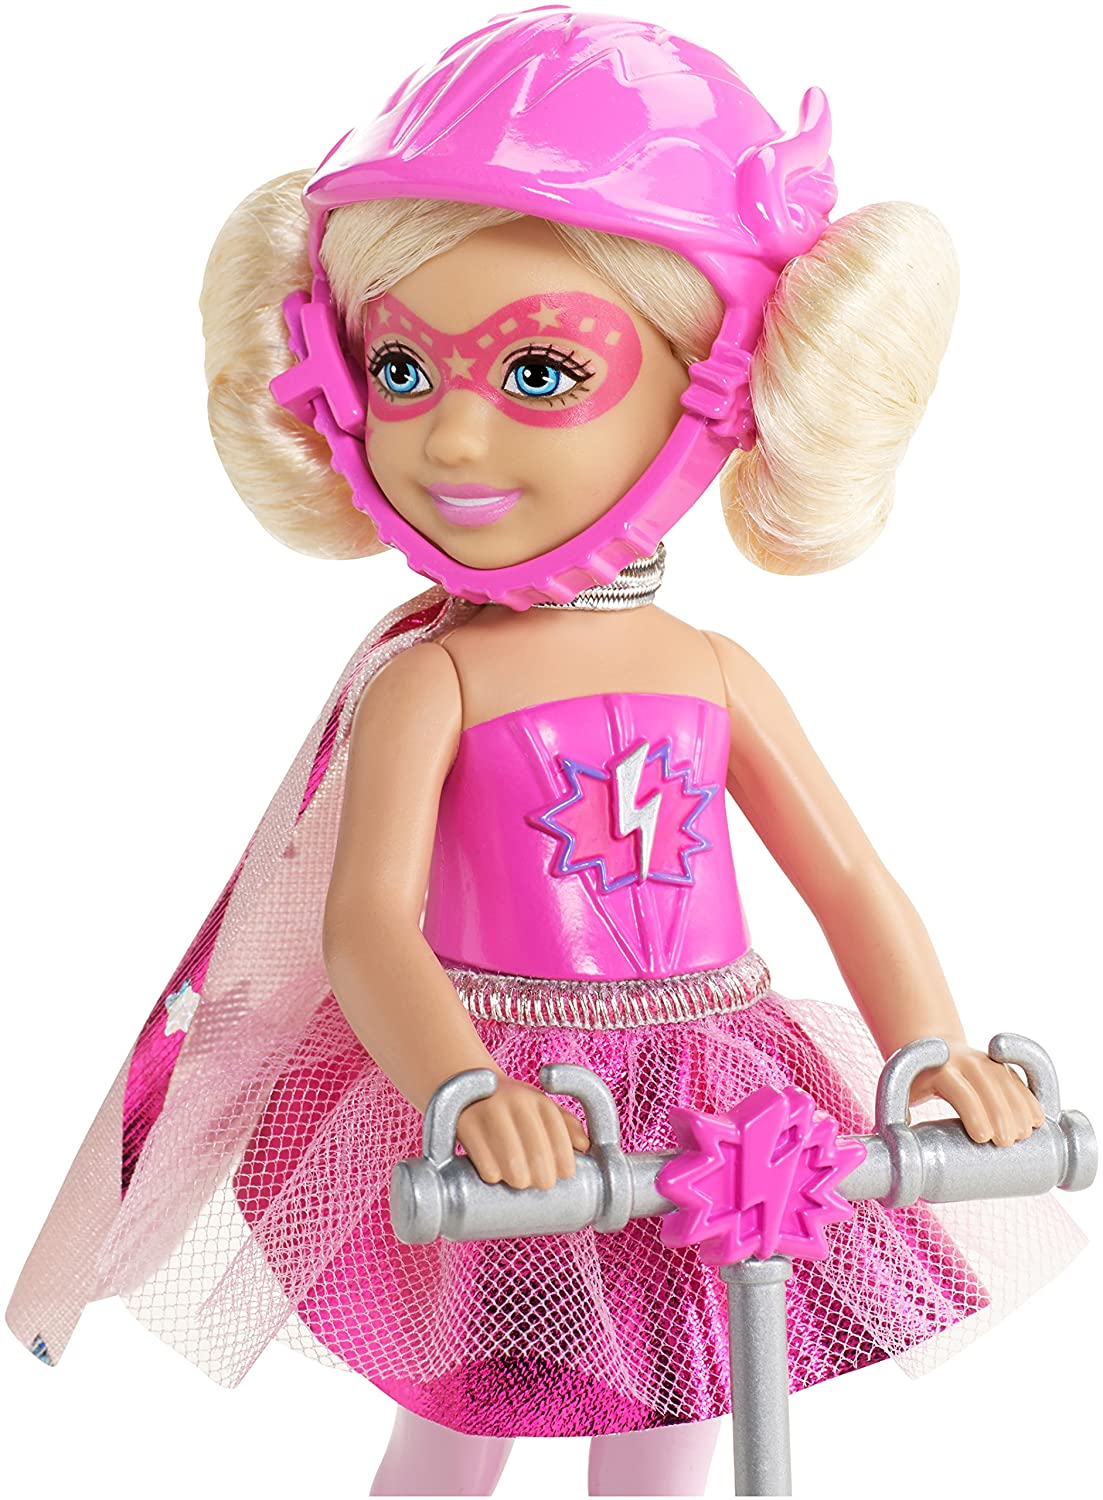 Amazon.com: Barbie en la princesa poder Chelsea y Scooter ...